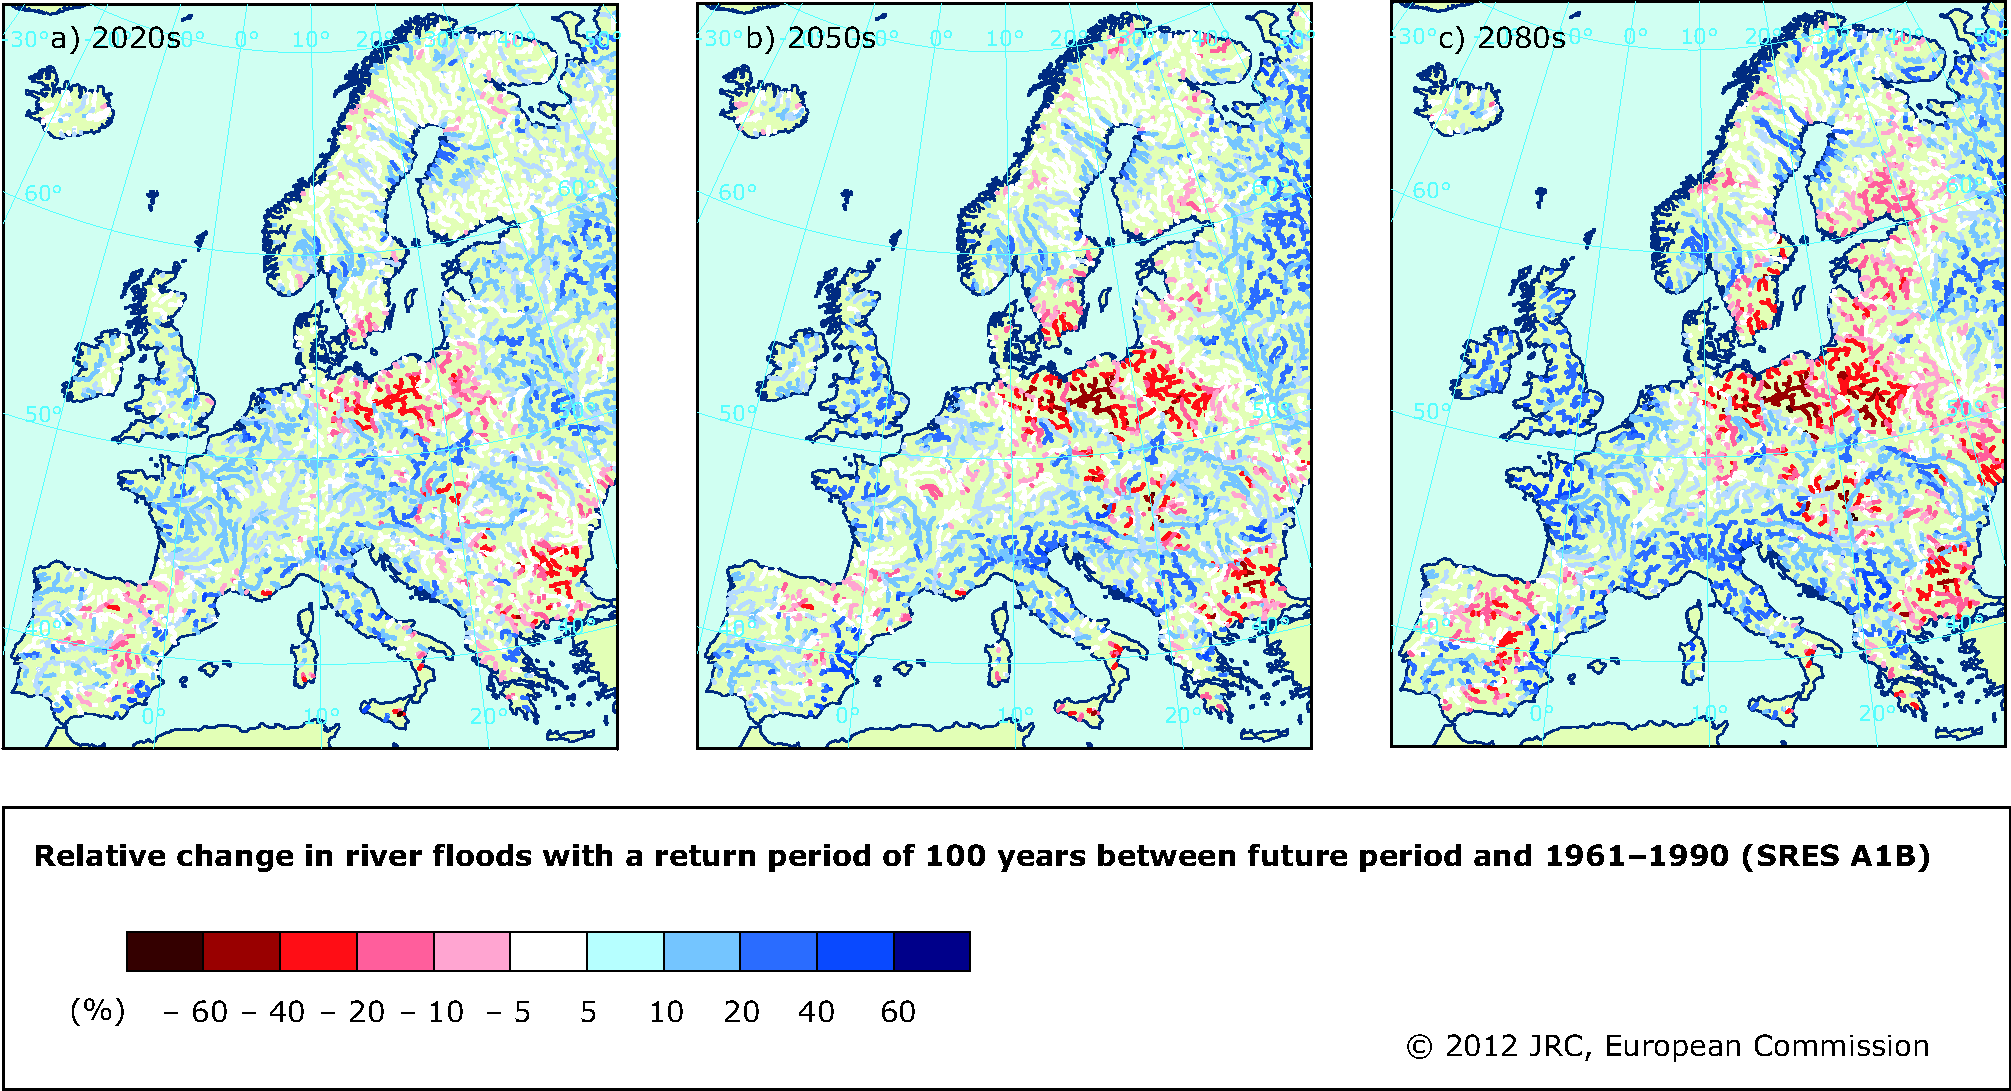 Projected change in river floods with a return period of 100 years